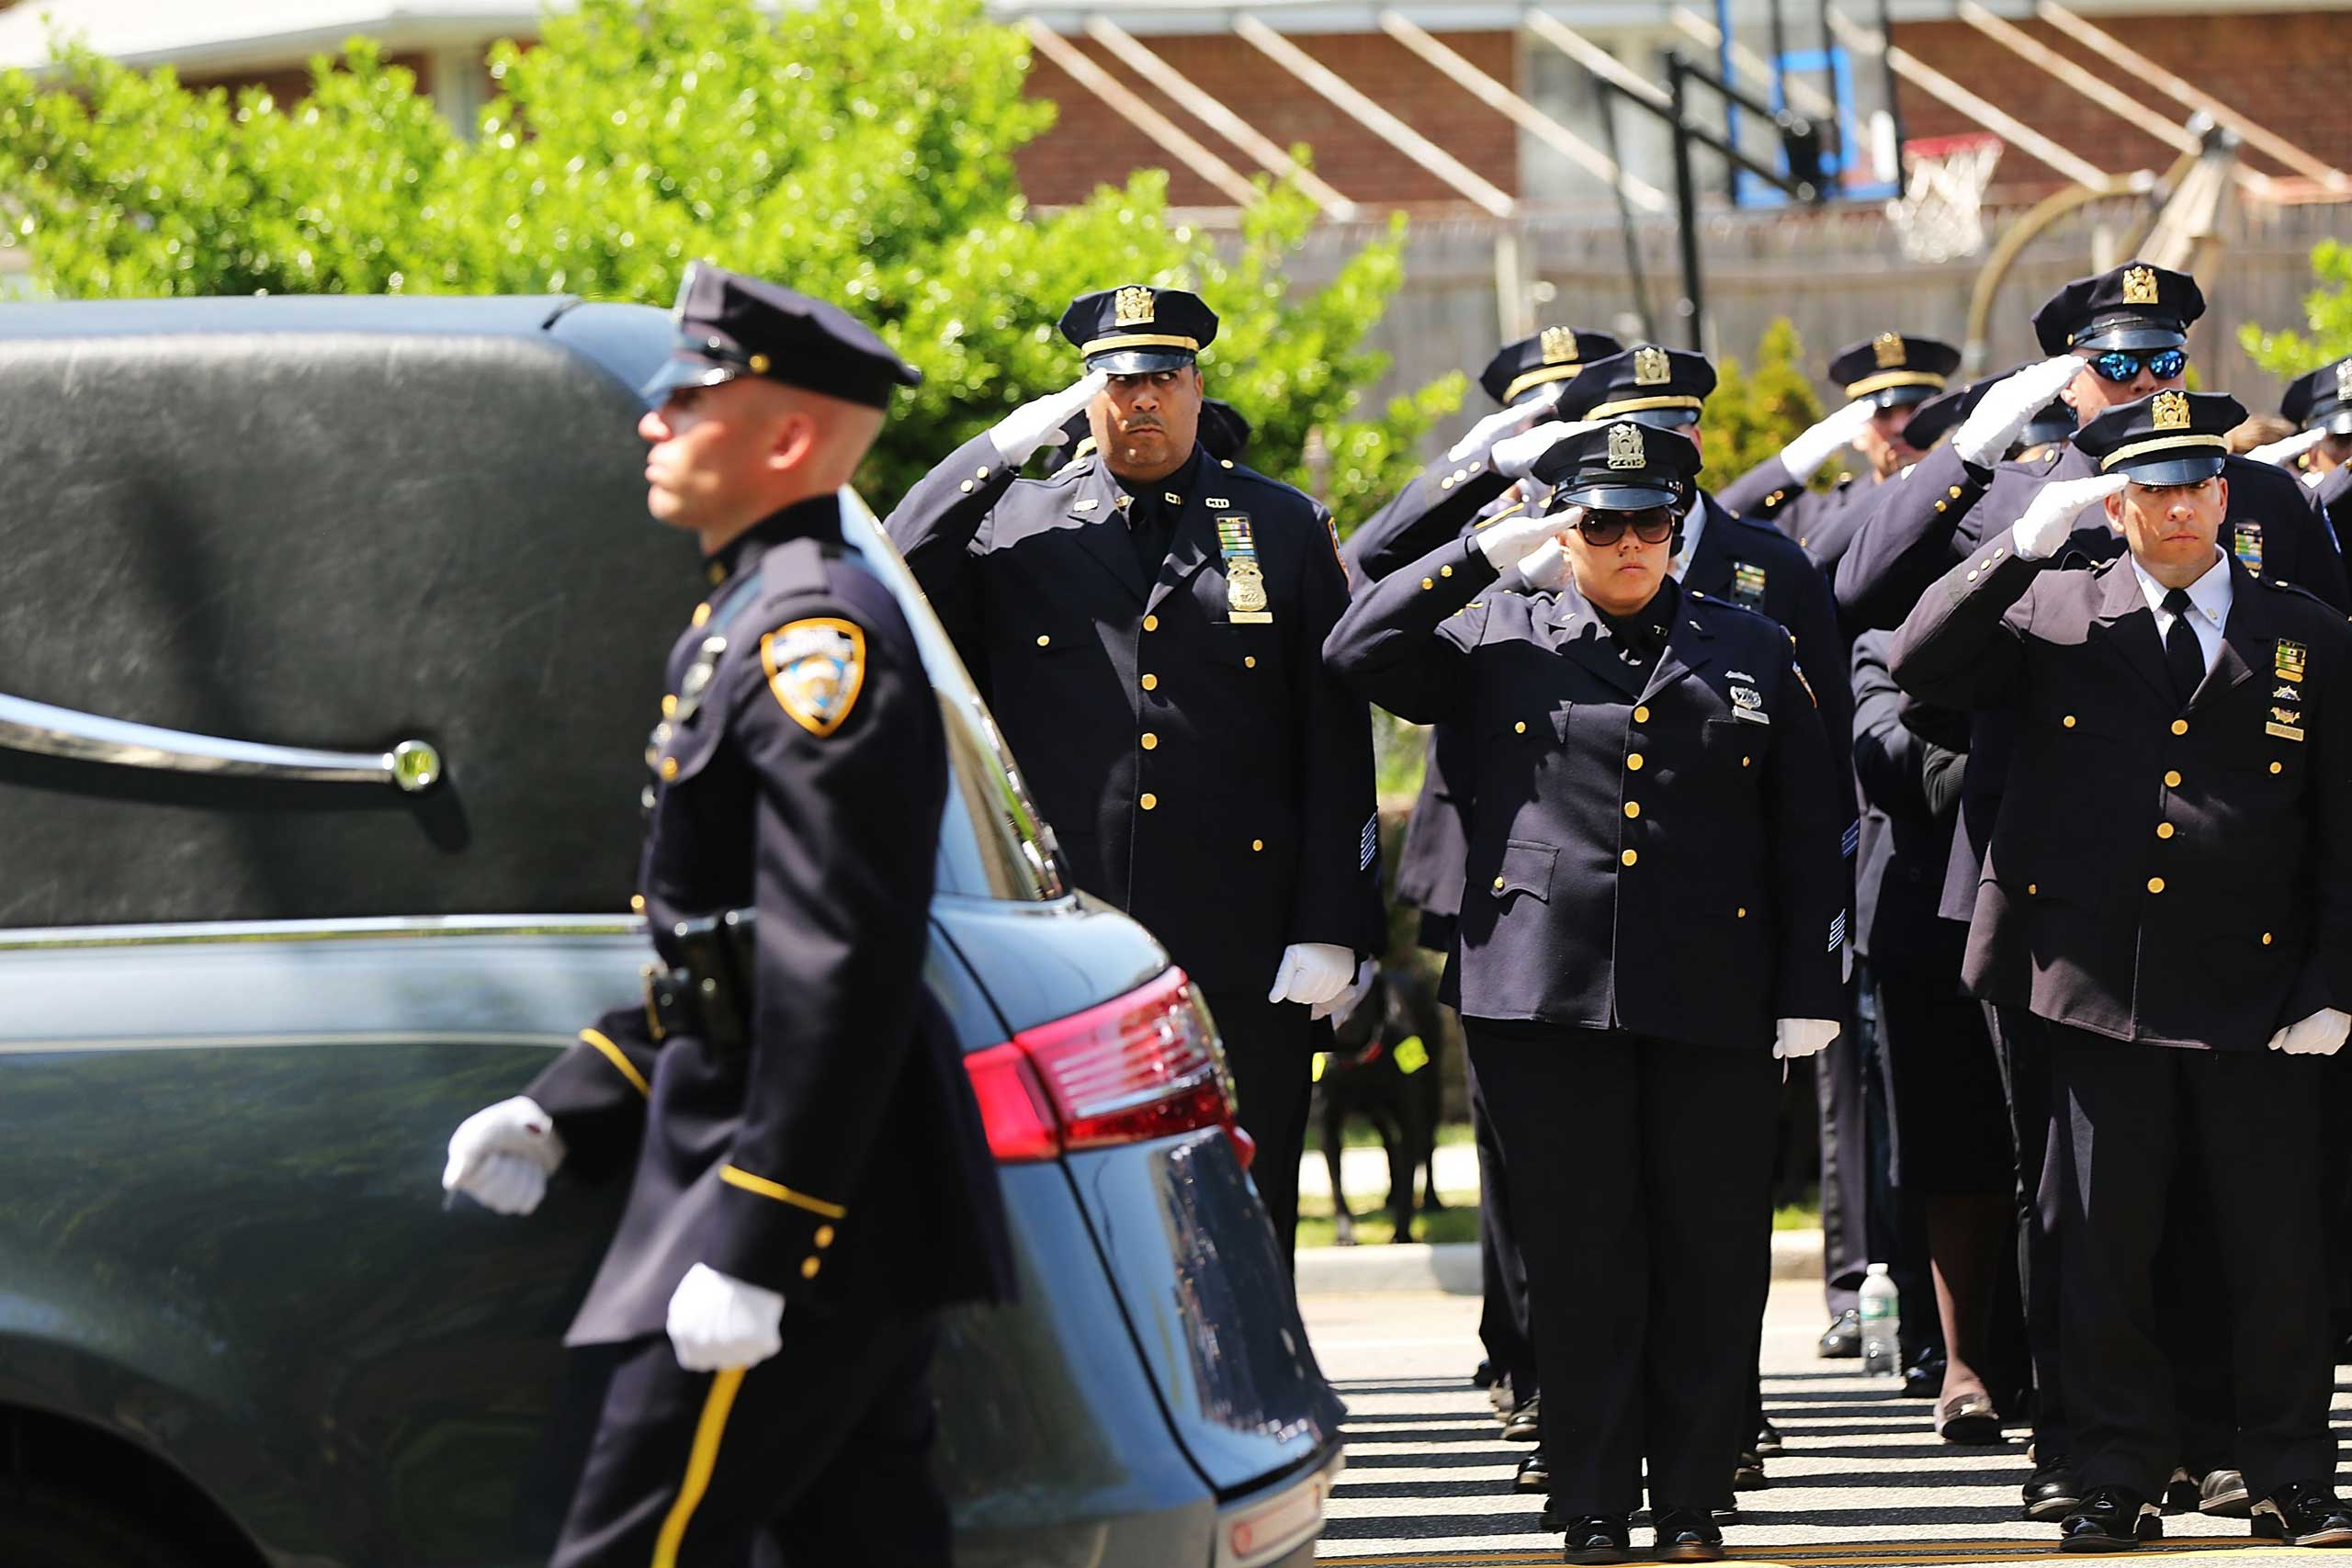 The funeral of police officer Brian Moore, who died last Monday after being shot in the head while on duty two days earlier in Queens, in Seaford, N.Y., on May 8, 2015.